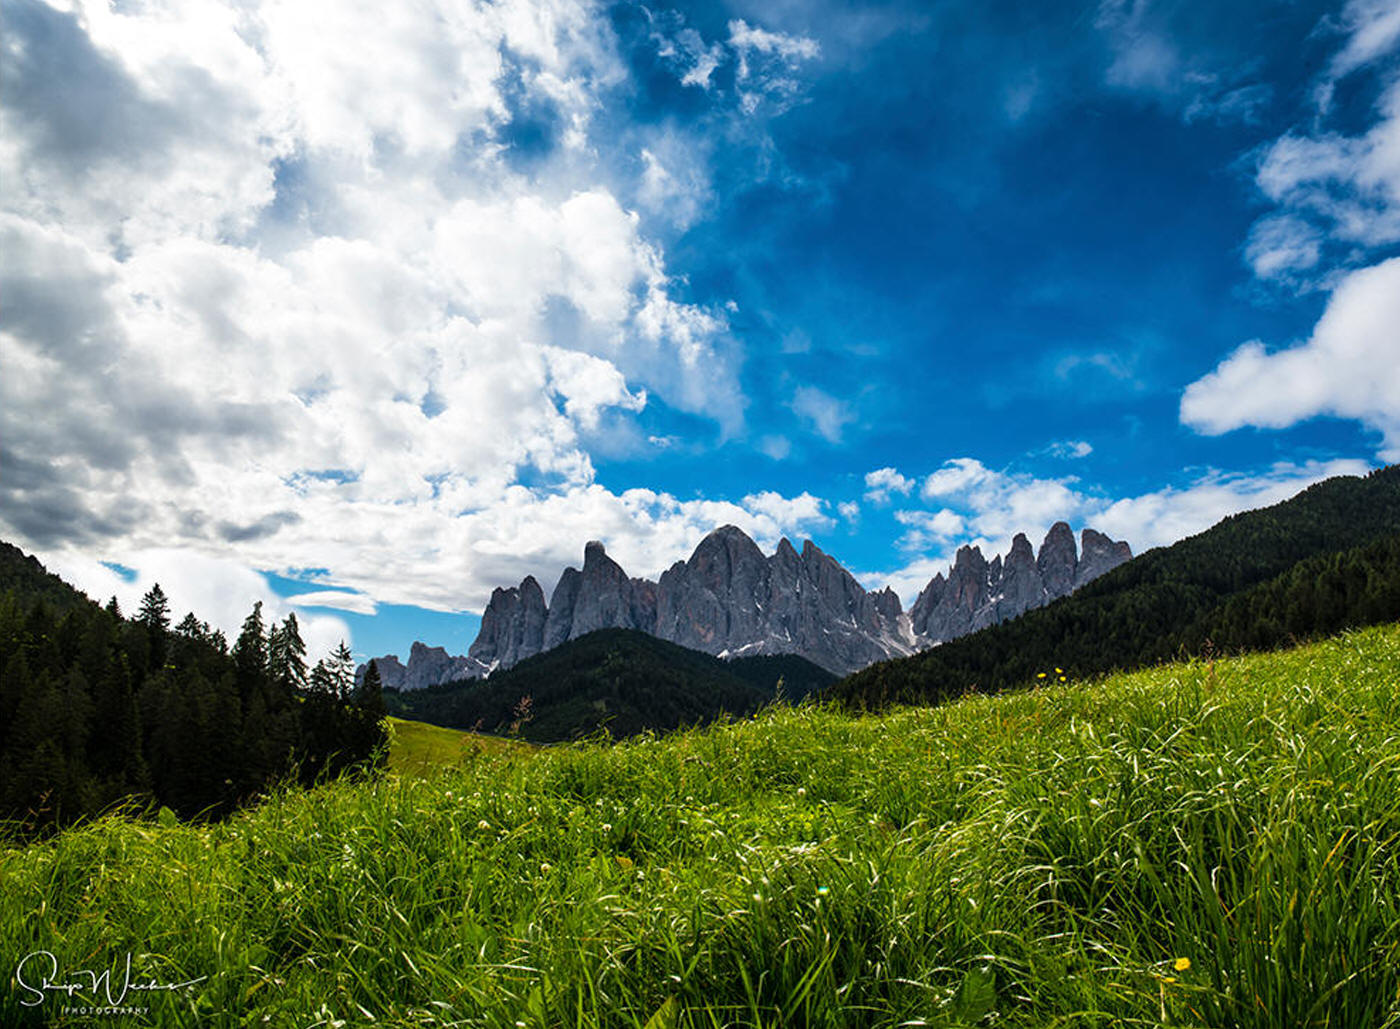 Approaching the Dolomites by Skip Weeks